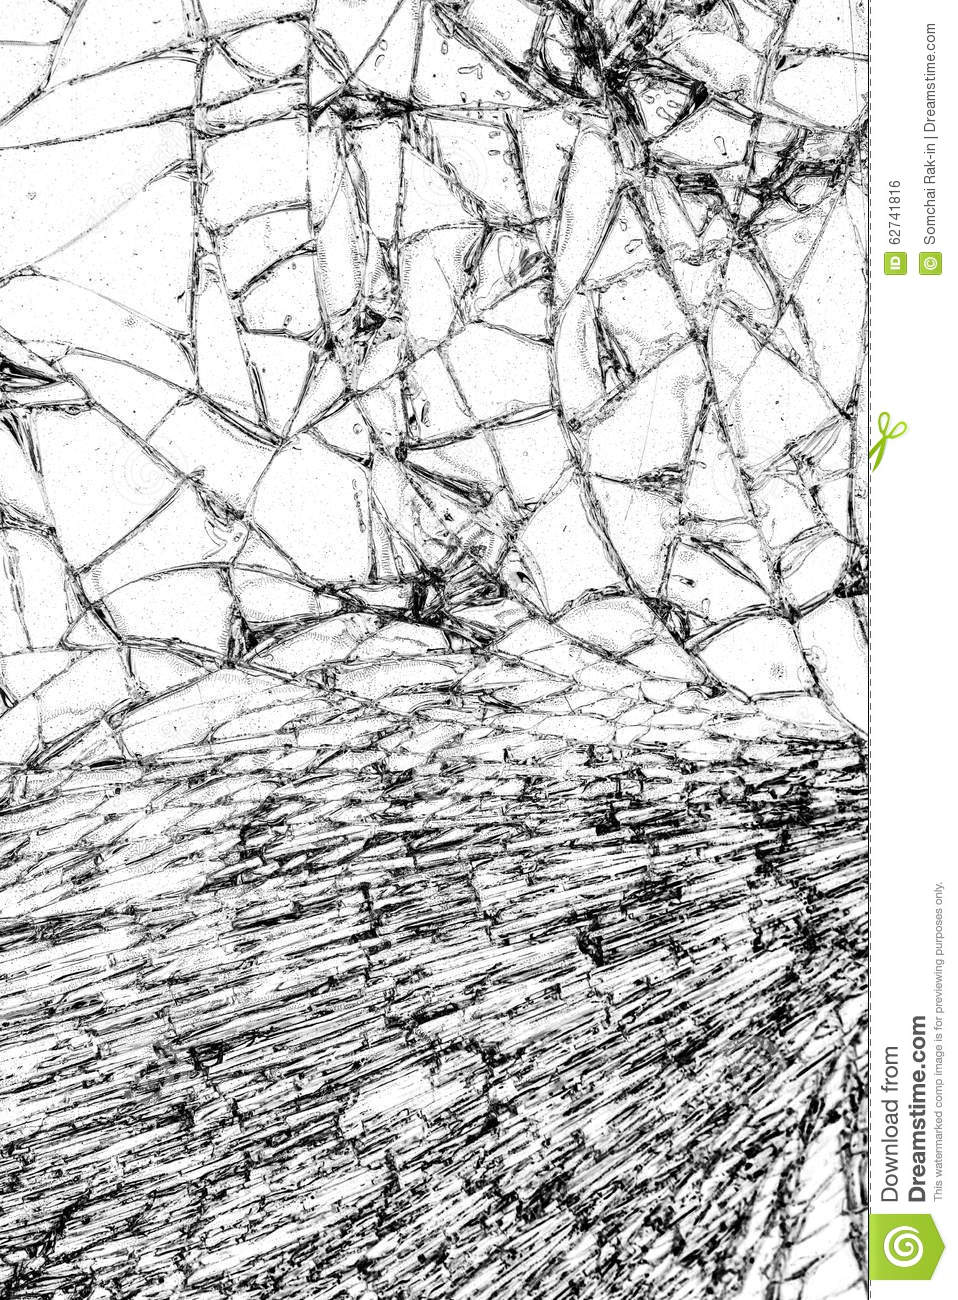 Broken Glass Texture, Cracked In The Glass. Stock Illustration ...